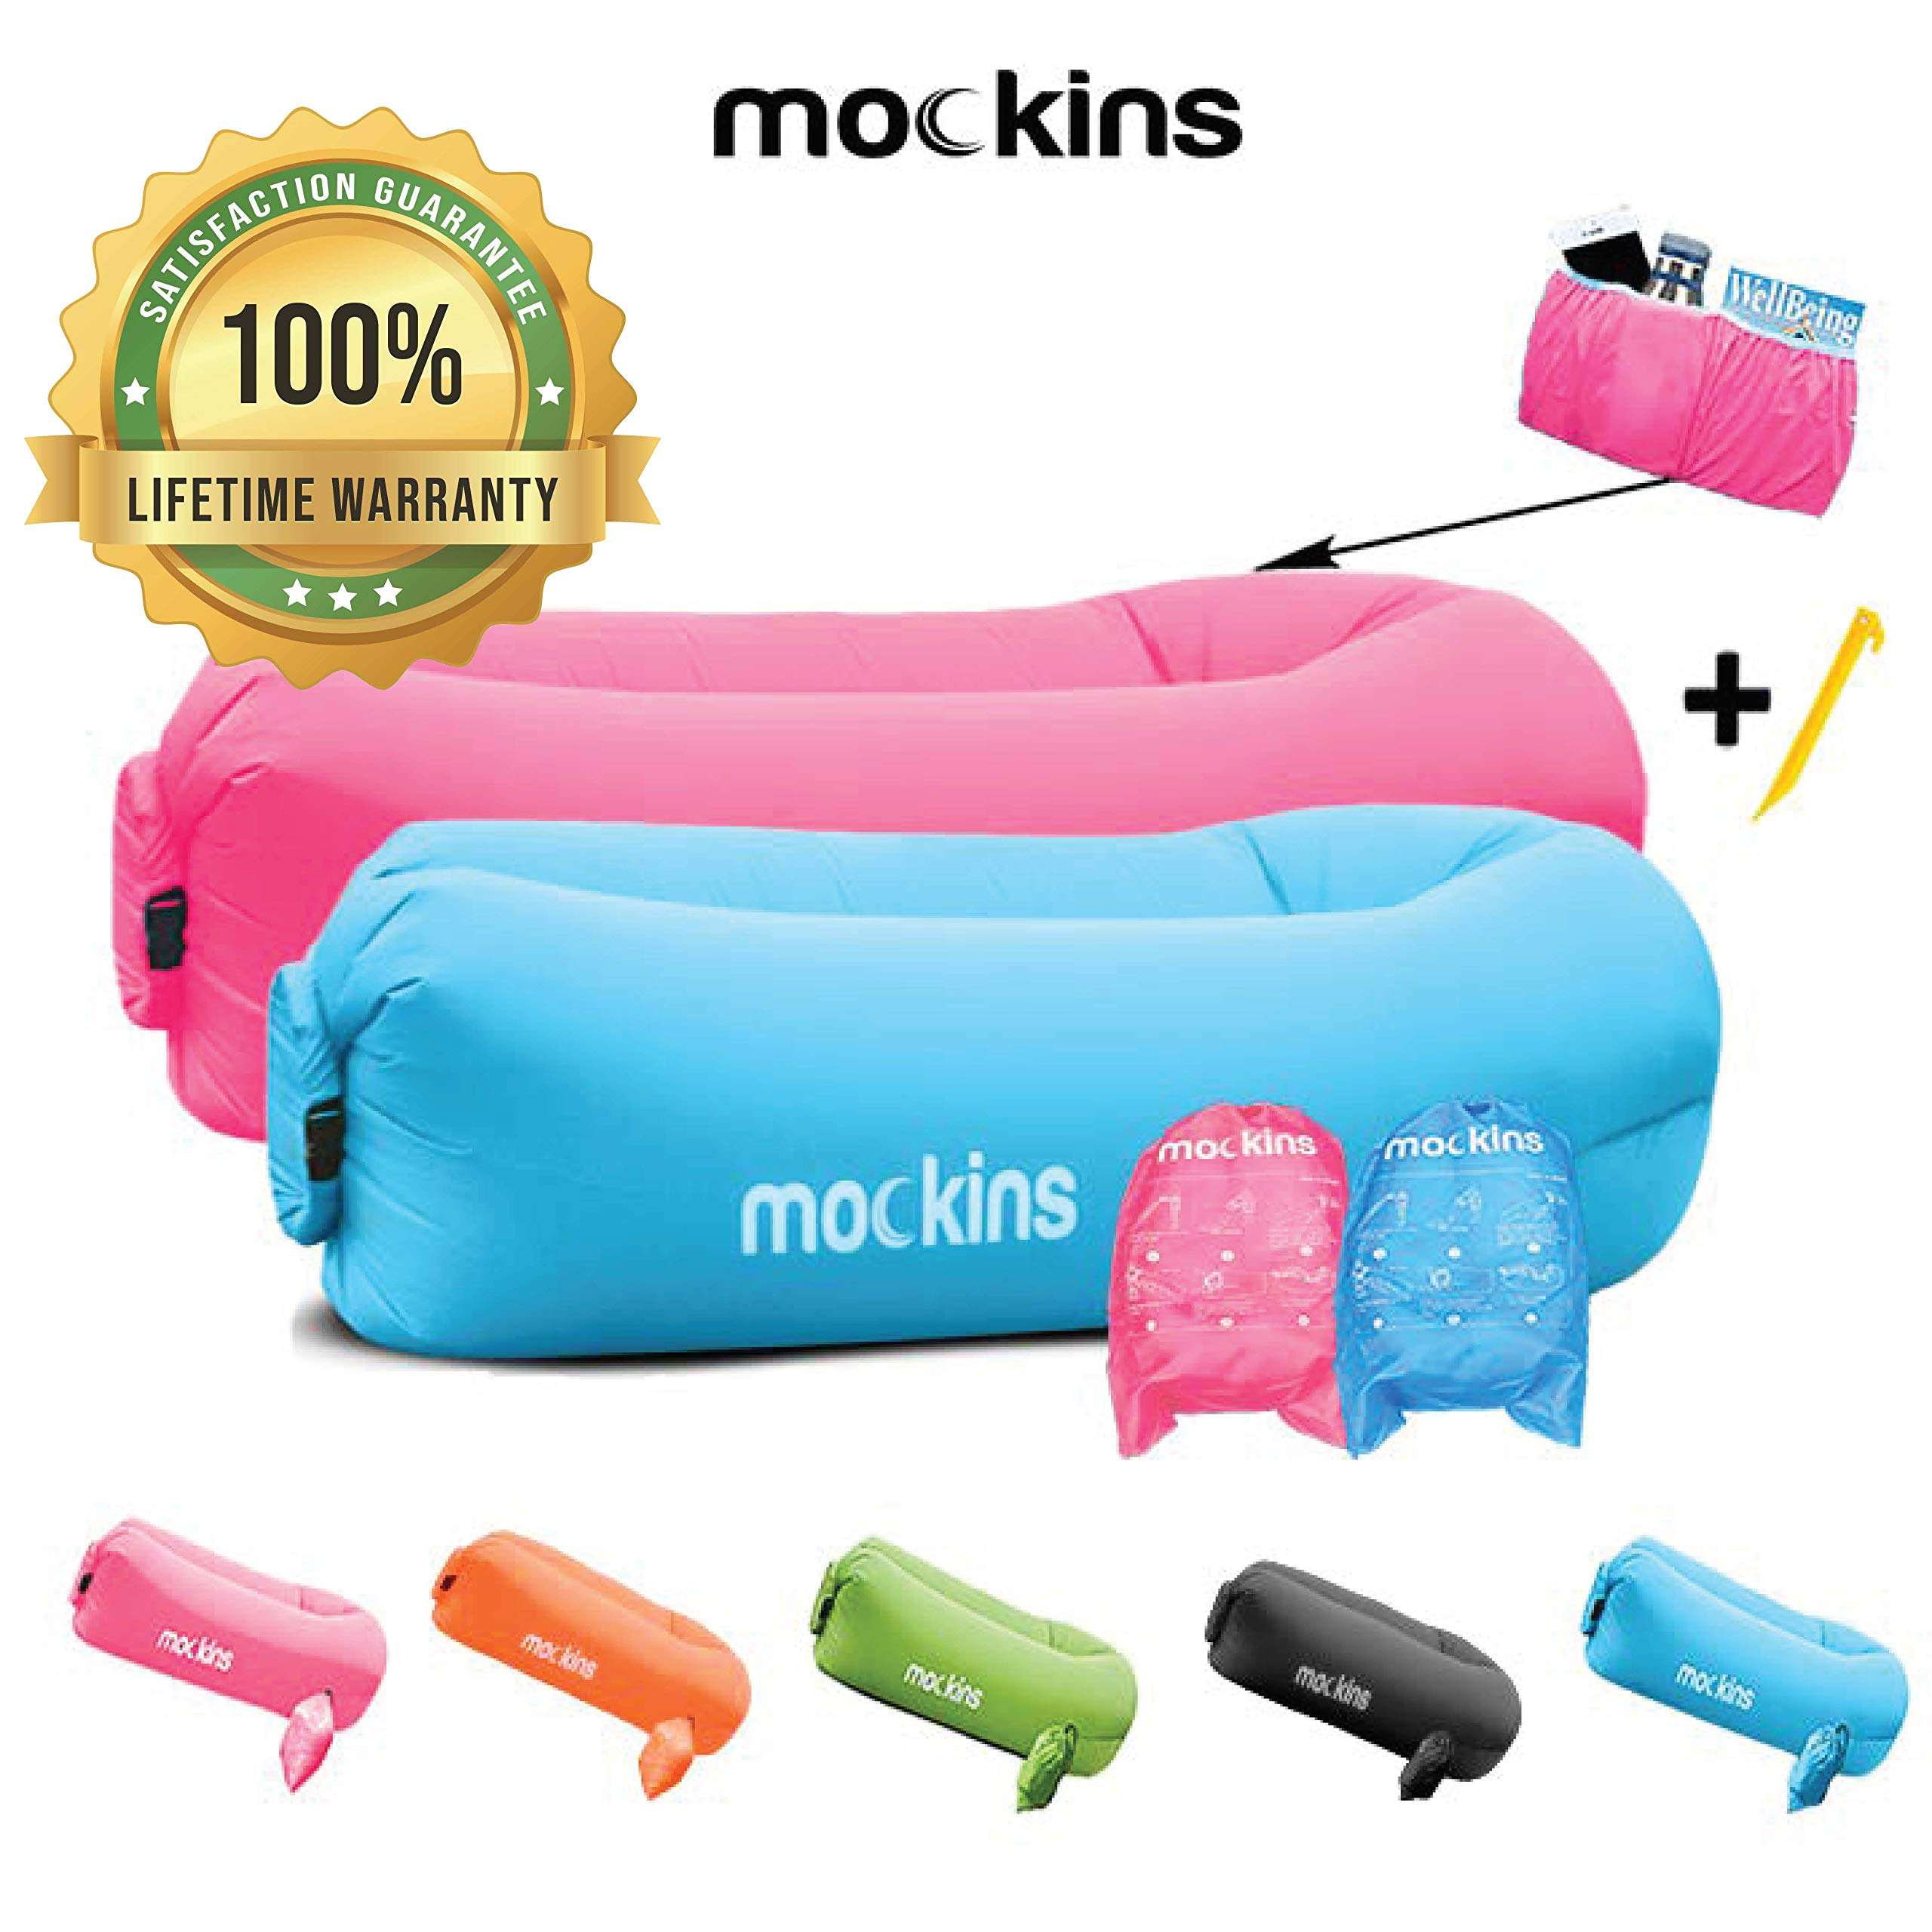 Mockins 2 Pack Inflatable Lounger Air Sofa Perfect for Beach Chair Camping Chairs or Portable Hammock and Includes Travel Bag Pouch and Pockets | Easy to Use Camping Accessories -Blue and Pink Color by Mockins